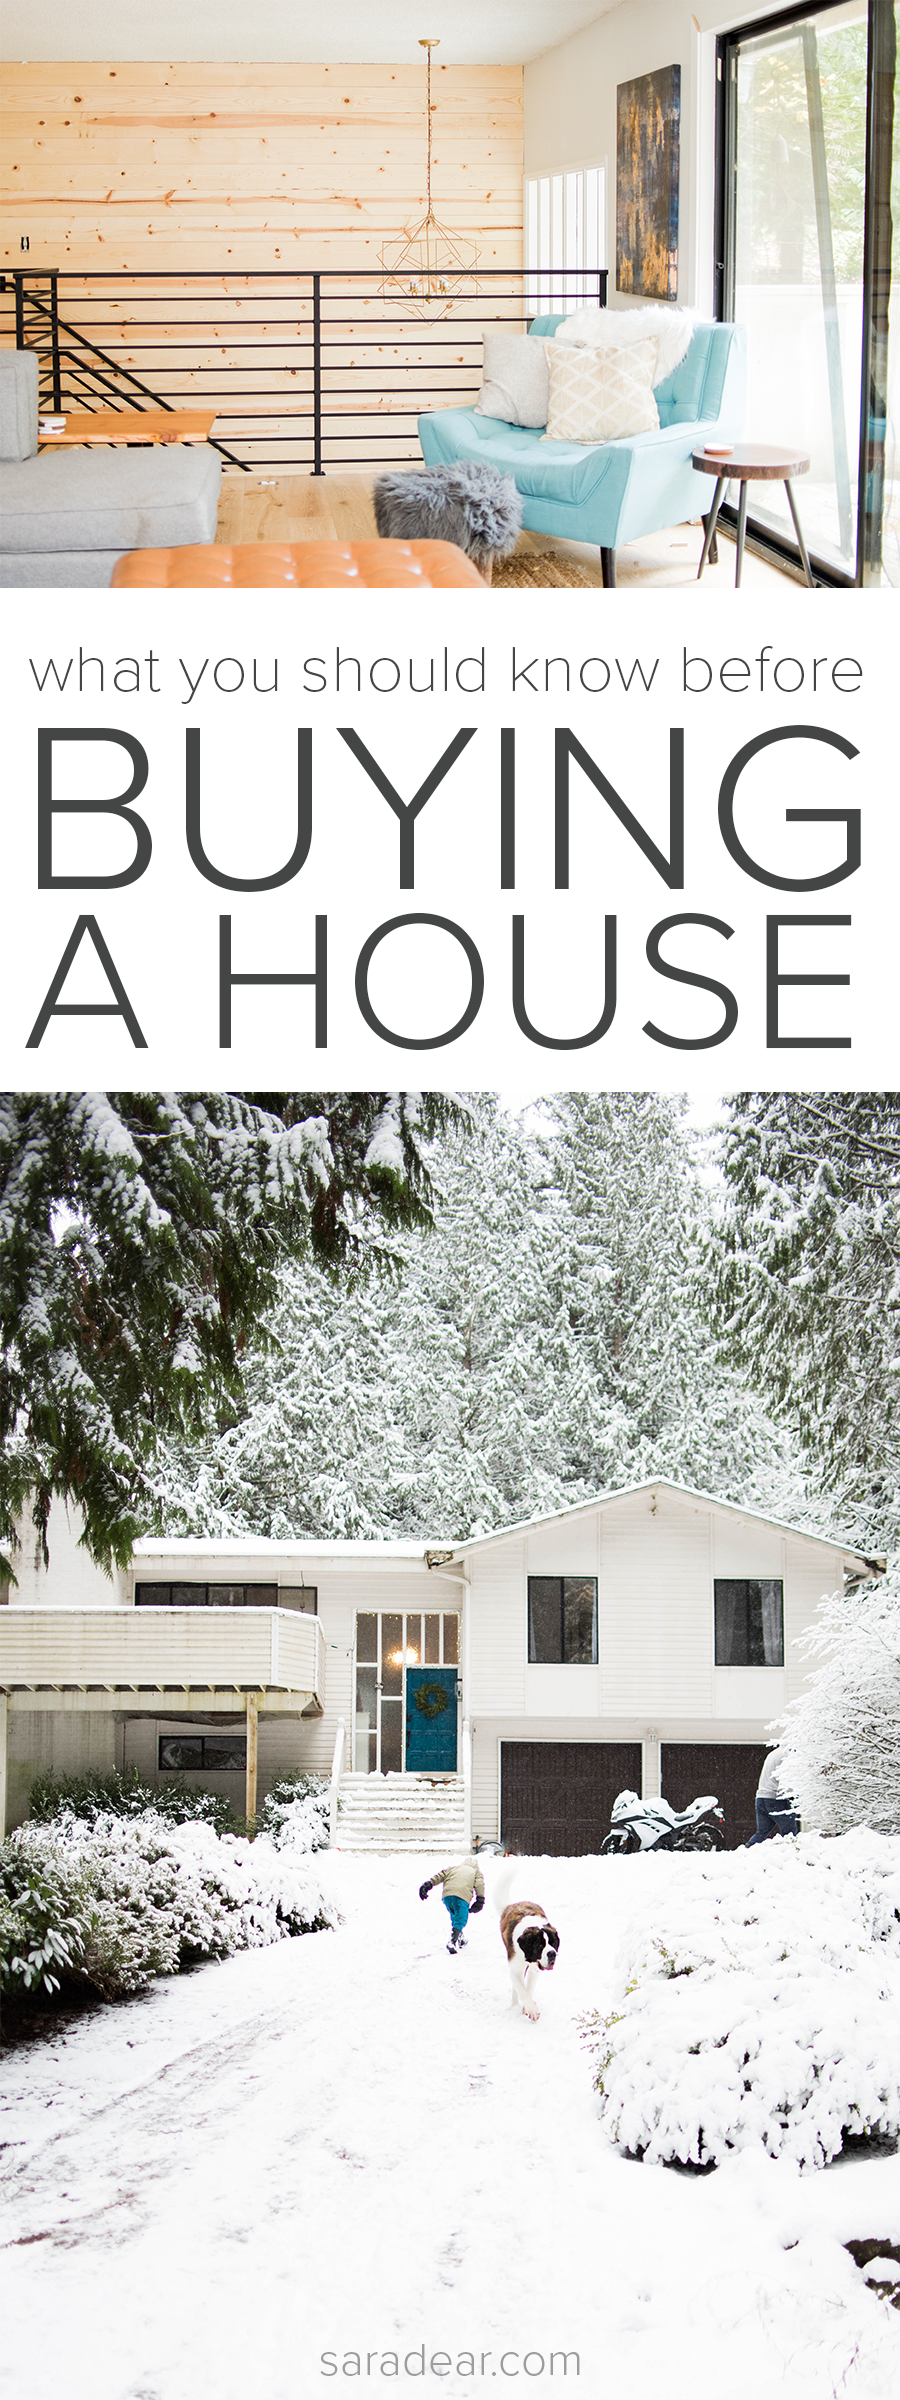 What You Should know beofre buying a house.png